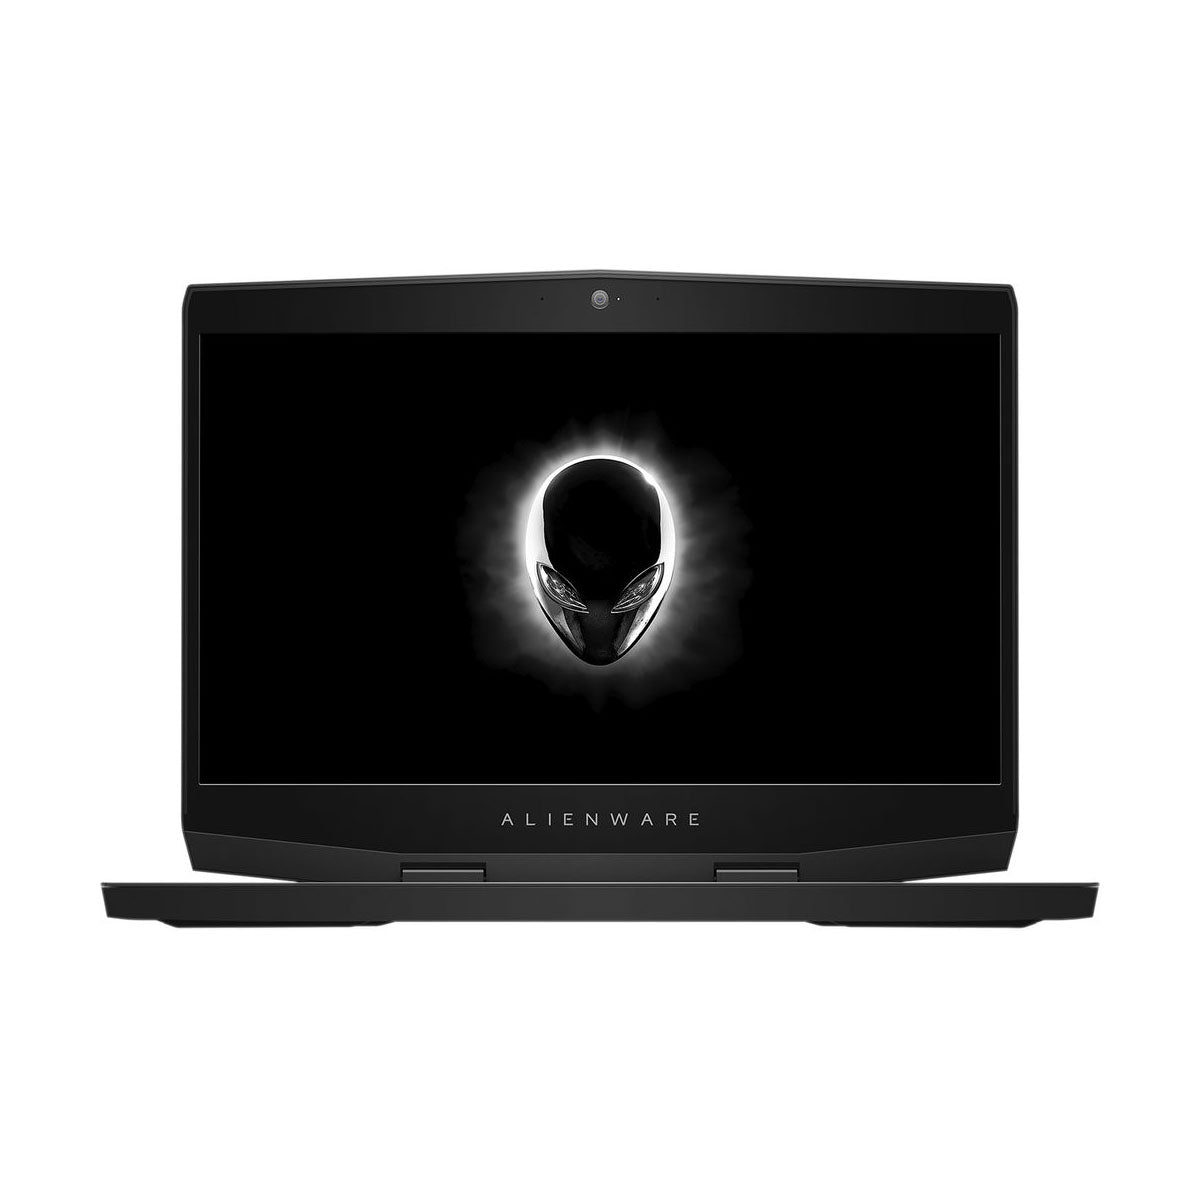 Alienware M15 R1 Gaming Laptop 15.6'' IPS FHD , Intel Core i7 i7-9750H 6-Core up to 4.5GHz, RTX 2070 8GB GPU, 16GB RAM, 512GB m2 SSD,  RGB LED AlienFX Keyboard, Windows 10, English Keyboard, Nebula Red